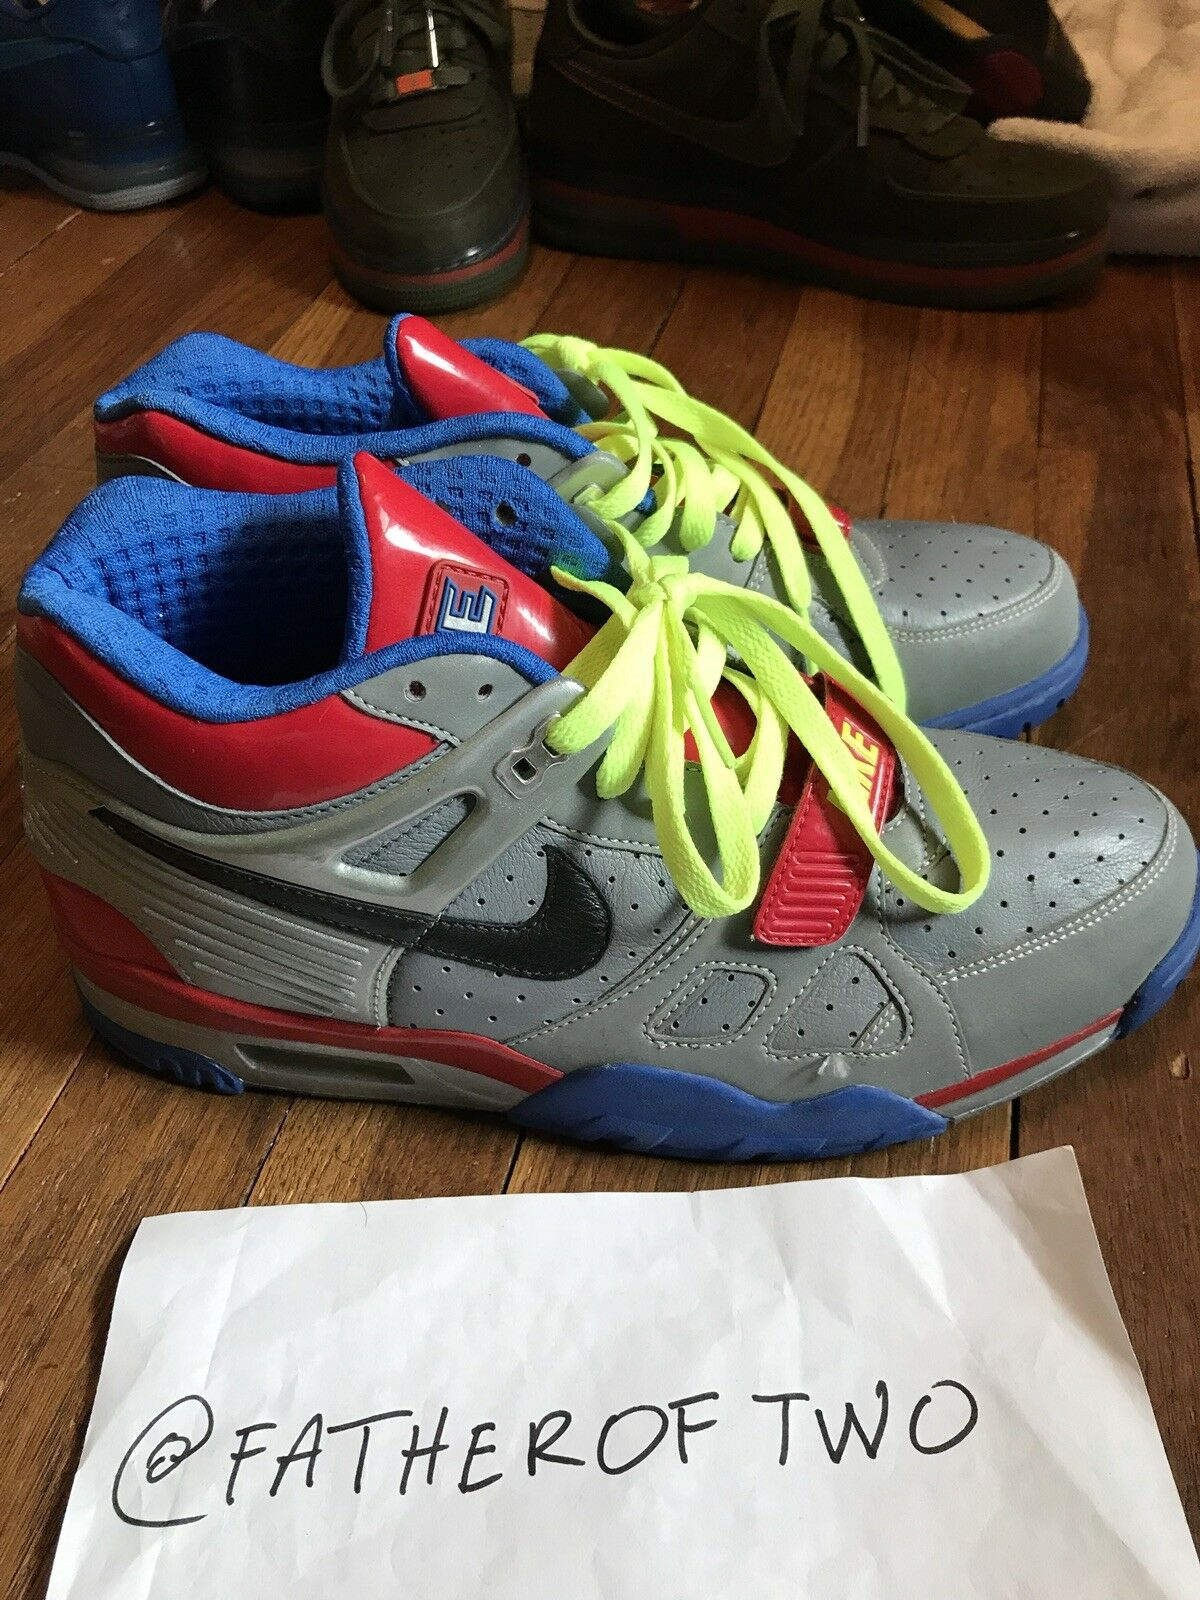 separation shoes 65e16 4578d Used Authentic Nike Air Trainer 3 III Transformers Optimus Prime SAMPLE US  Sz 9